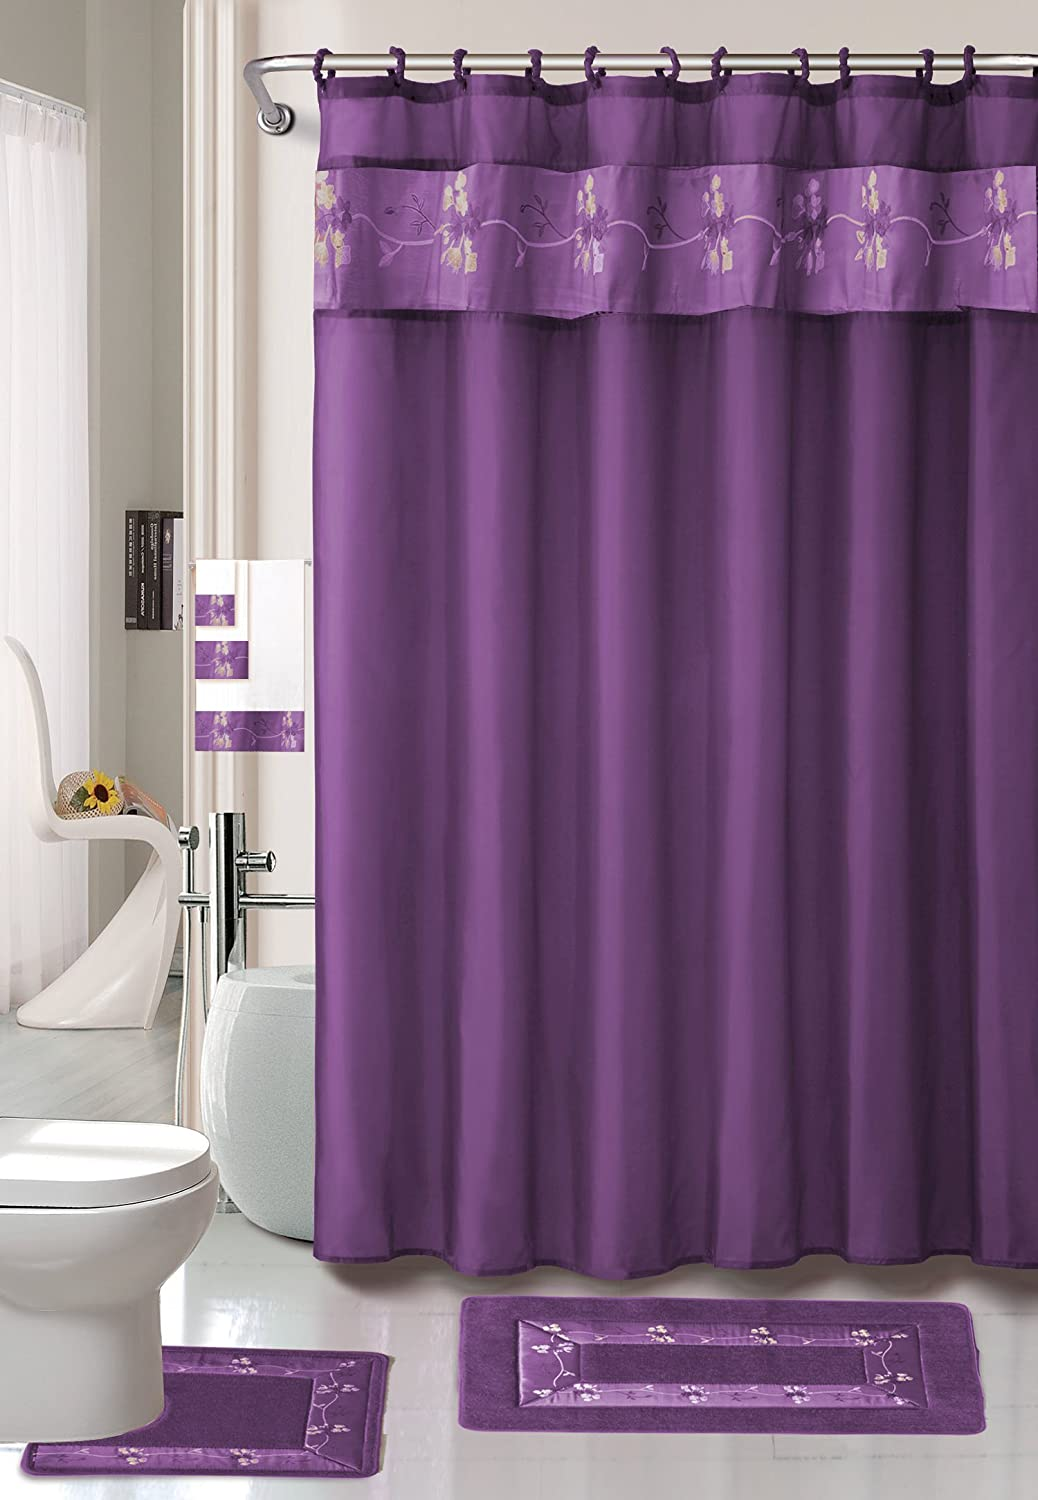 Amazoncom Purple Flower Piece Bathroom Set Rugsmats - Cheap bath rug sets for bathroom decorating ideas